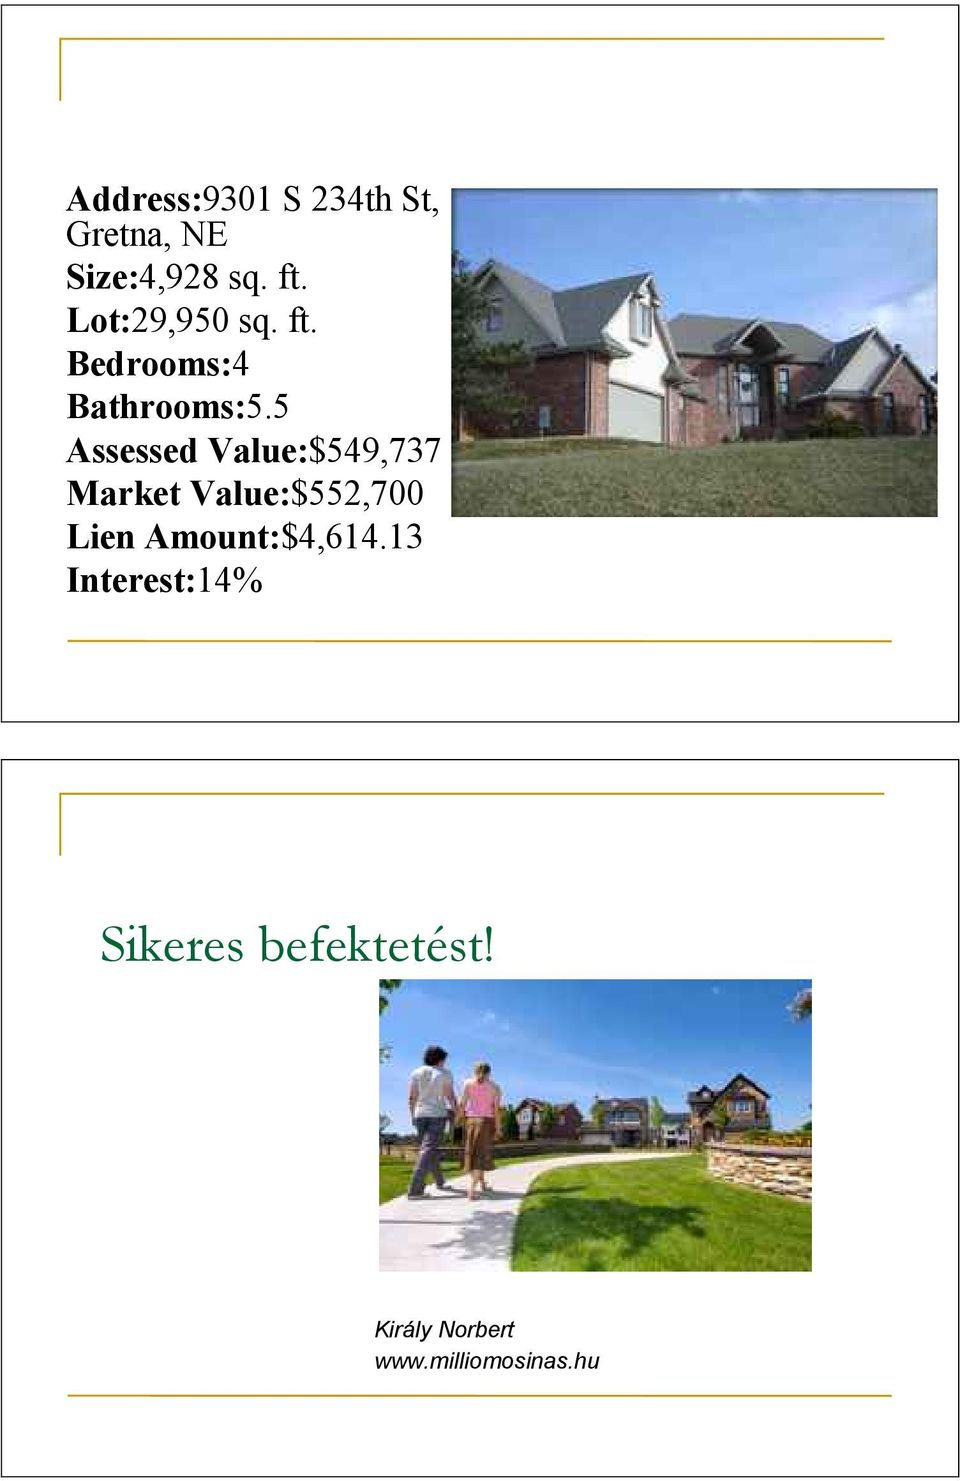 5 Assessed Value:$549,737 Market Value:$552,700 Lien